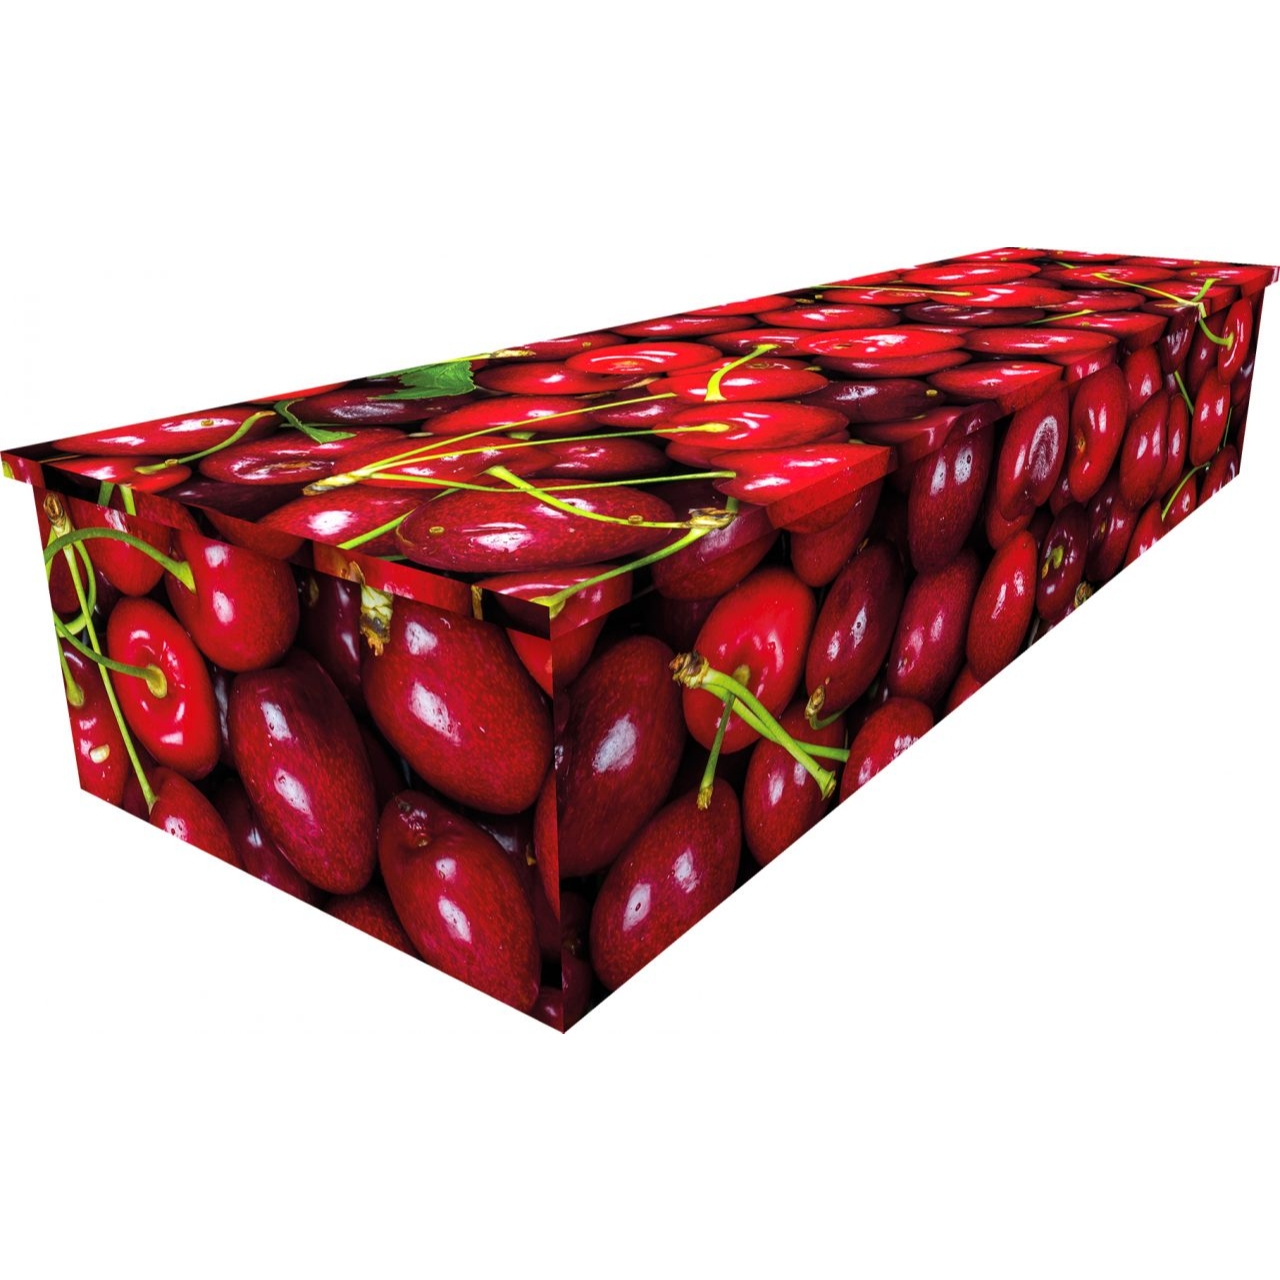 Cherries Cardboard Coffin